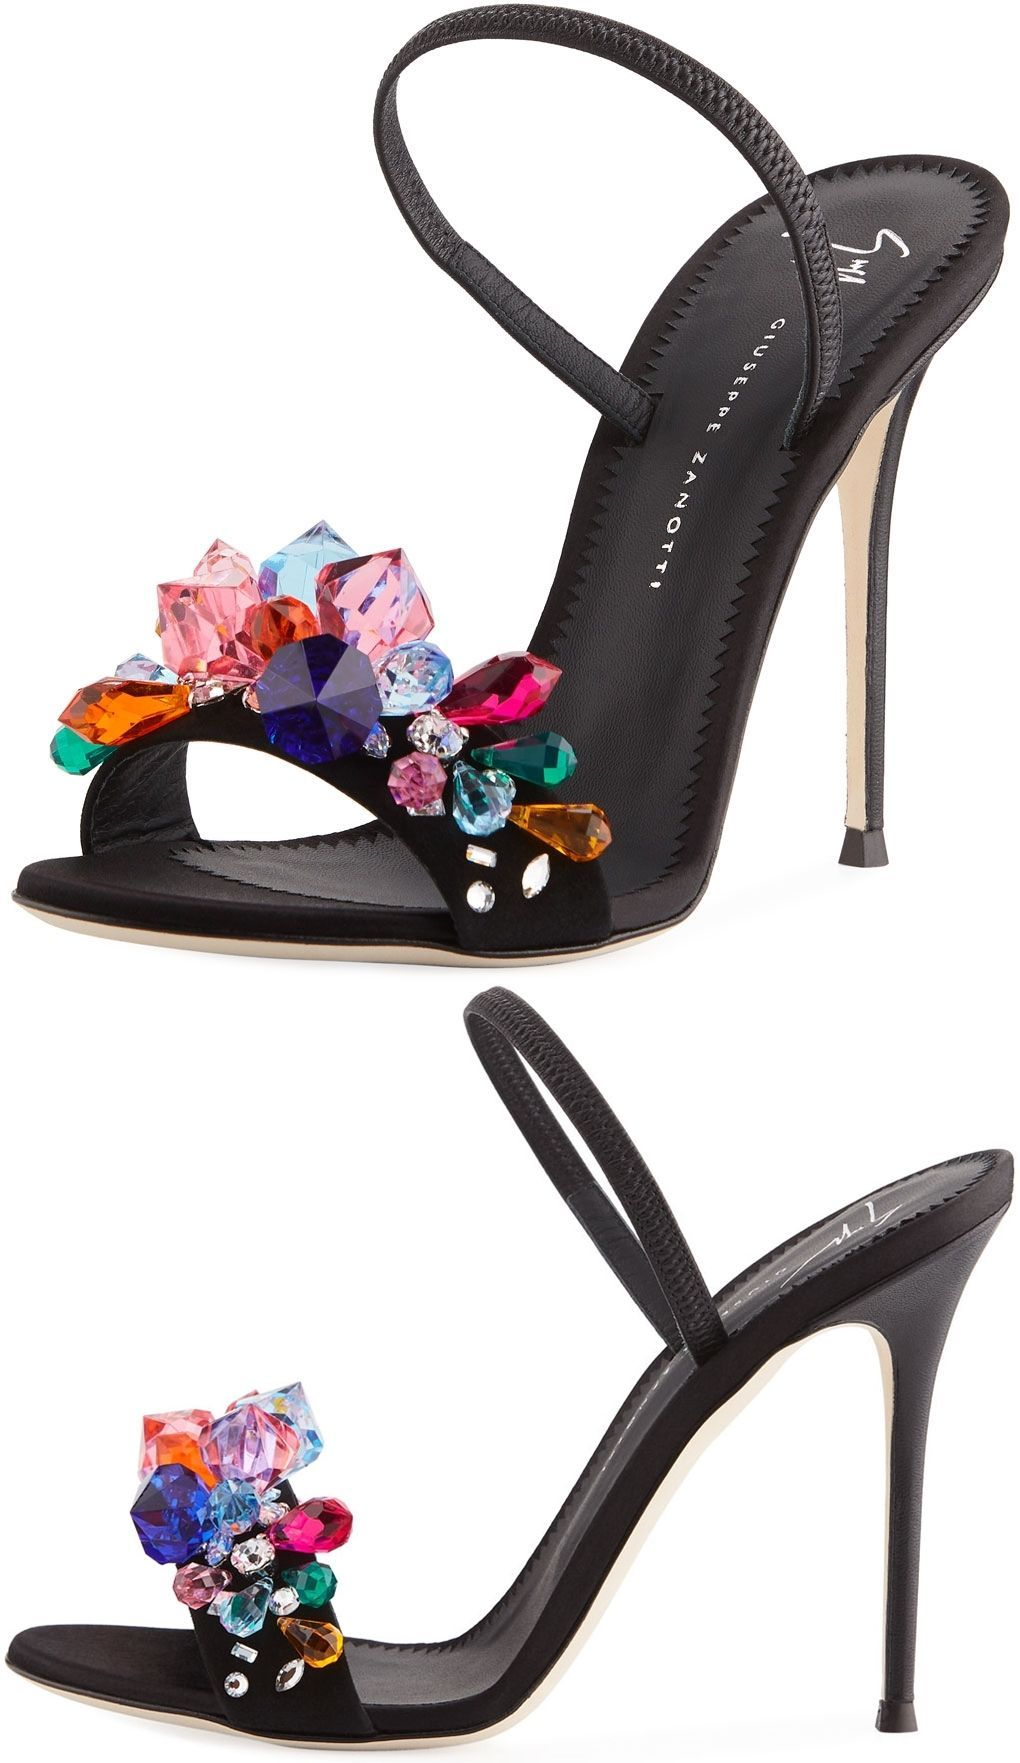 Giuseppe Zanotti Suede Sandal With Multicolor Crystal Embellishment Sandals Heels High Heel Sandals Womens Shoes High Heels